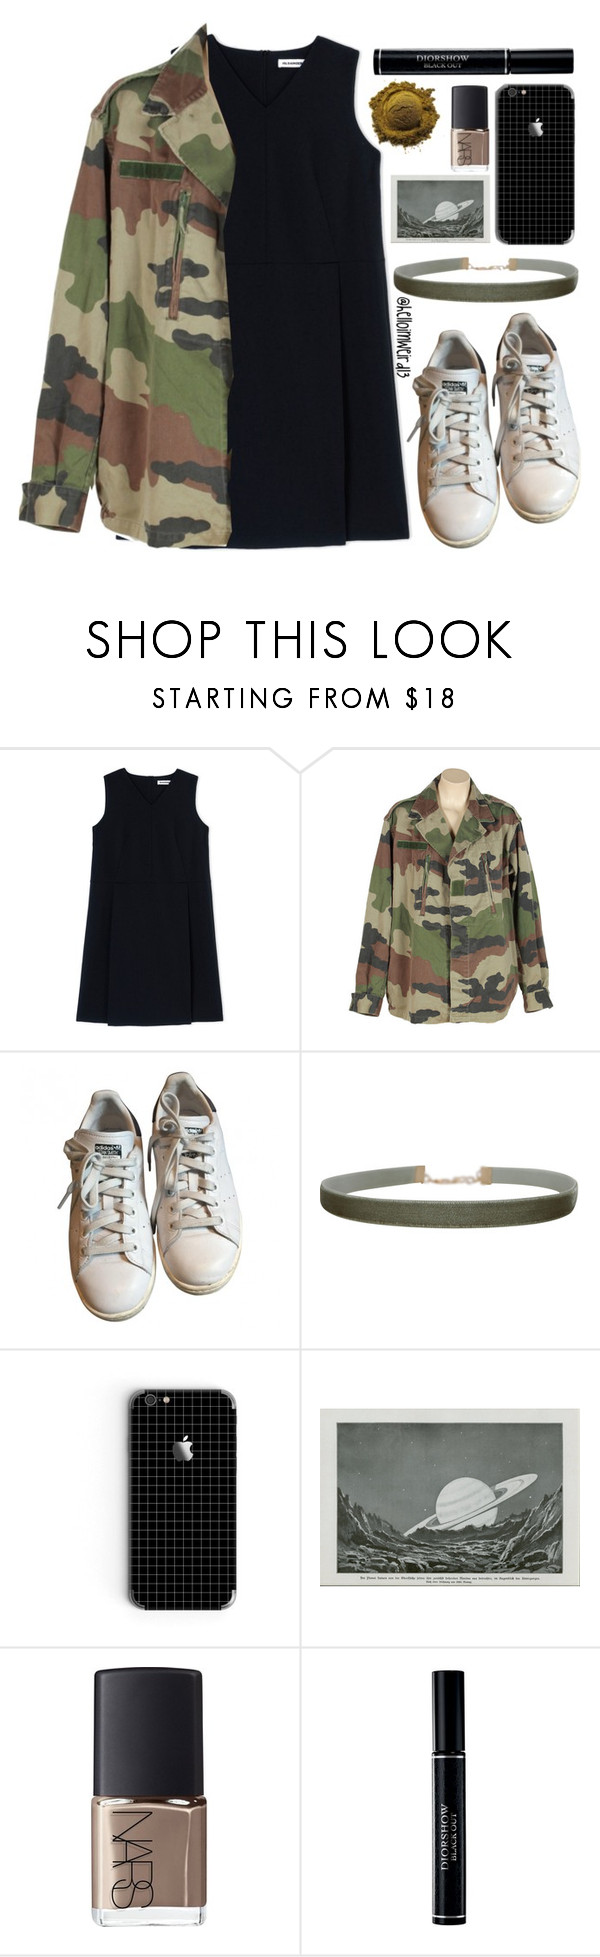 """sparks will fly"" by helloimweird13 ❤ liked on Polyvore featuring Jil Sander, adidas, Humble Chic, NARS Cosmetics and Christian Dior"